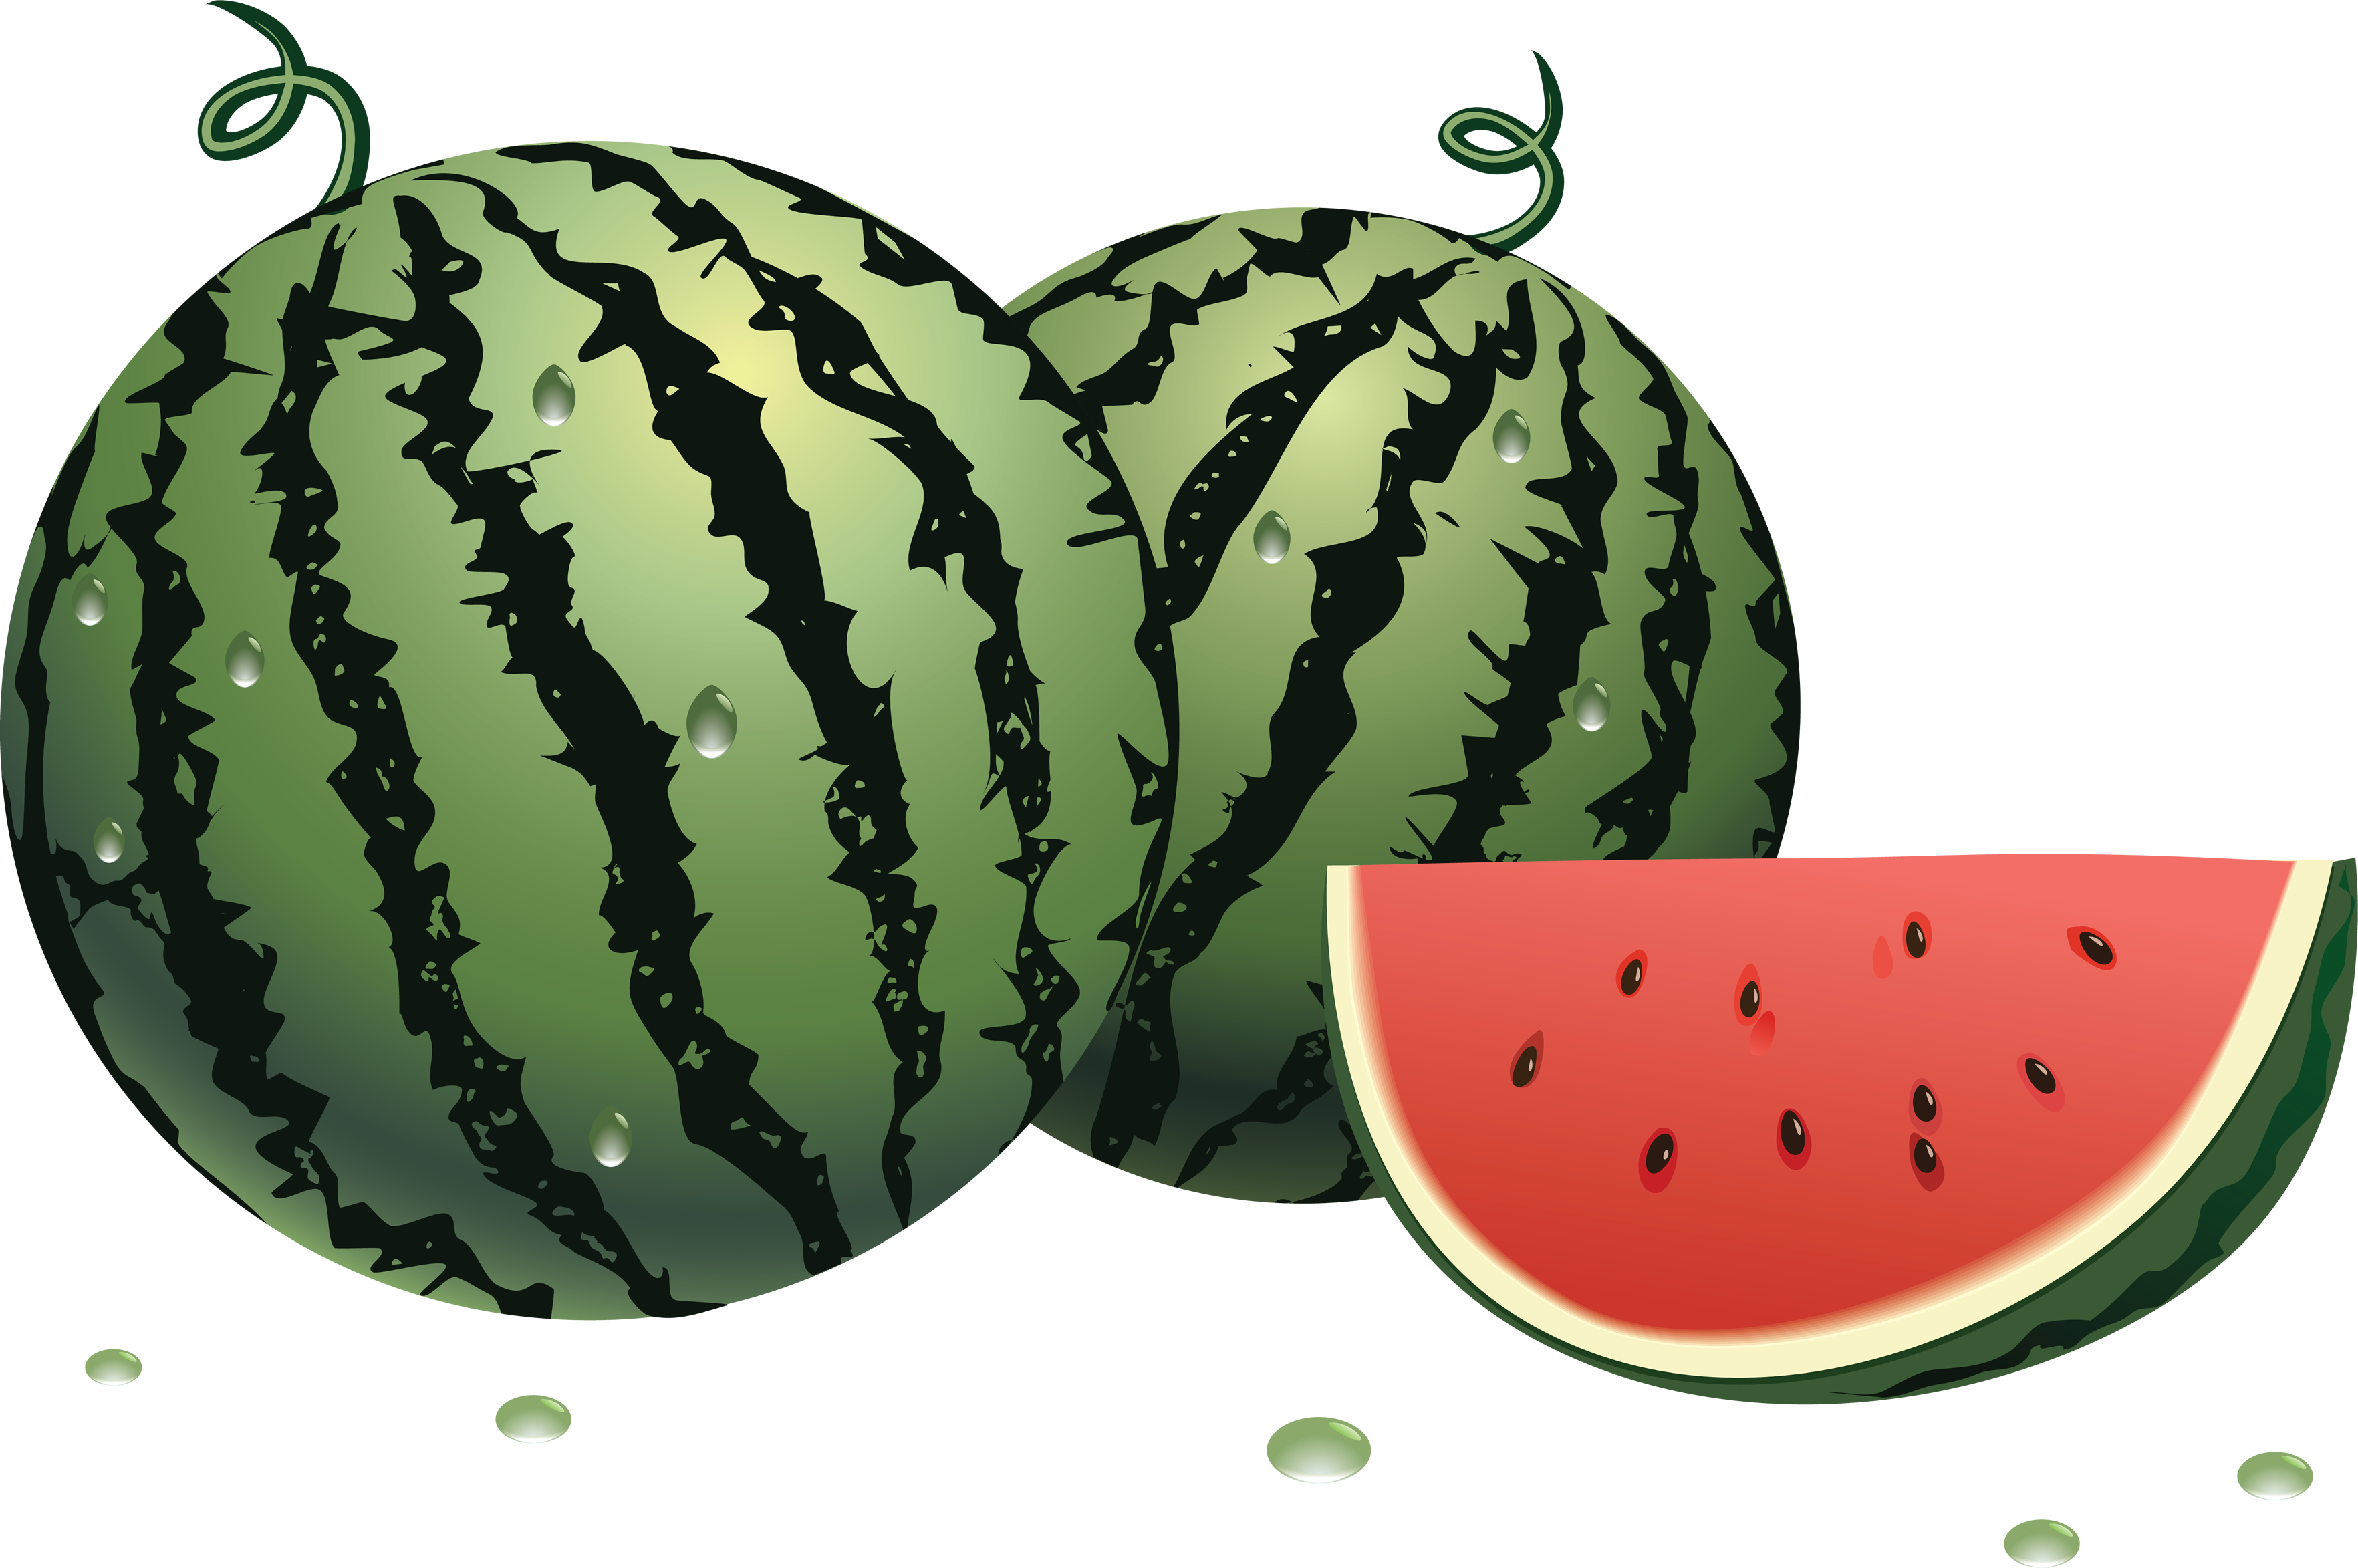 Watermelon clipart single vegetable Images watermelon download Watermelon free